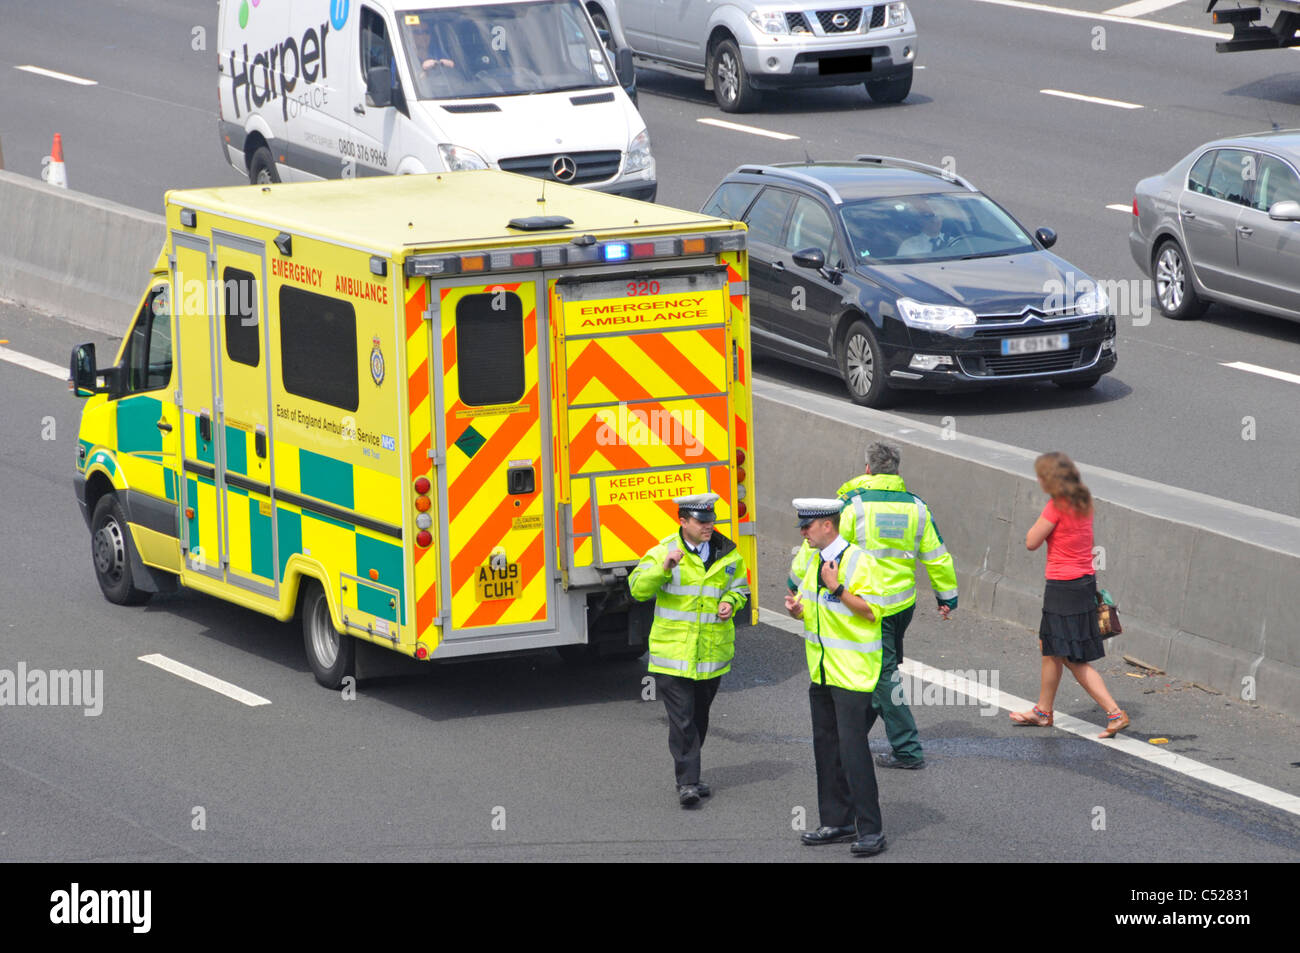 Paramedic with walking woman car crash accident victim at NHS emergency ambulance M25 motorway incident under bridge Stock Photo